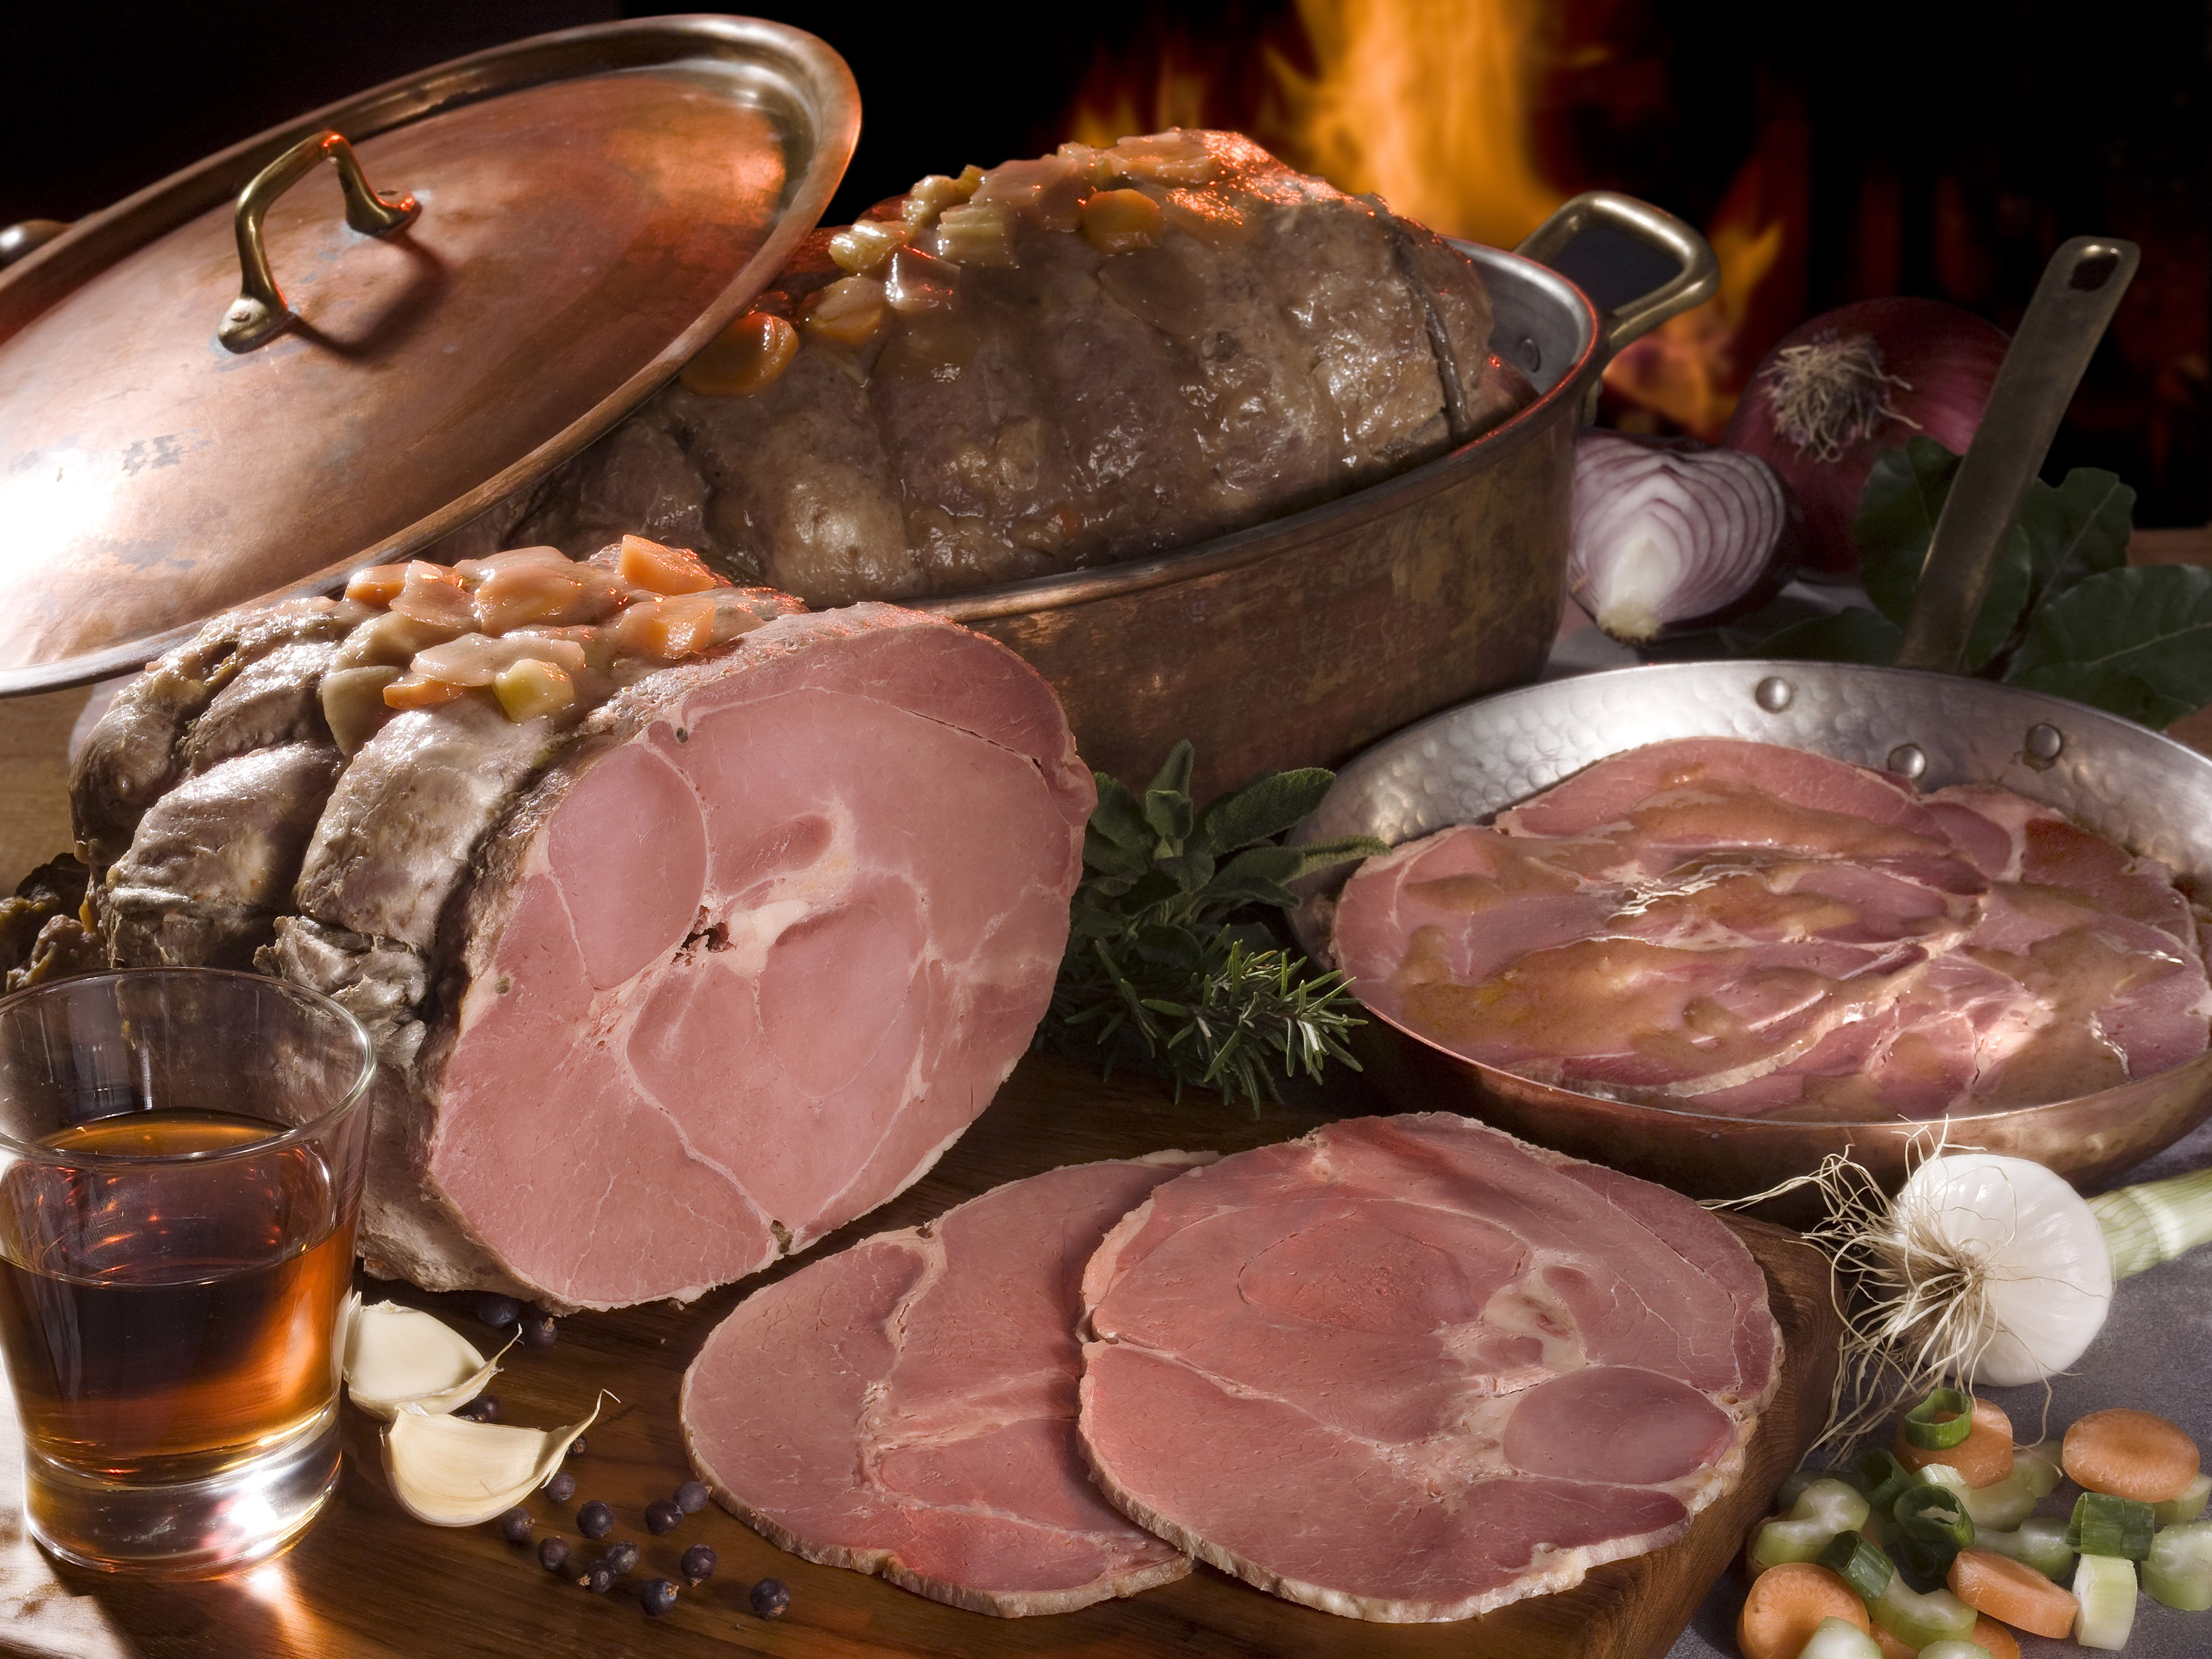 Stuffed Wild Boar With Sagrantino Wine Only Legs Of Wild Boar Without The Rind Coming From Farms Located In Umbria And Tuscany After The Rind Has Bee Carniceria